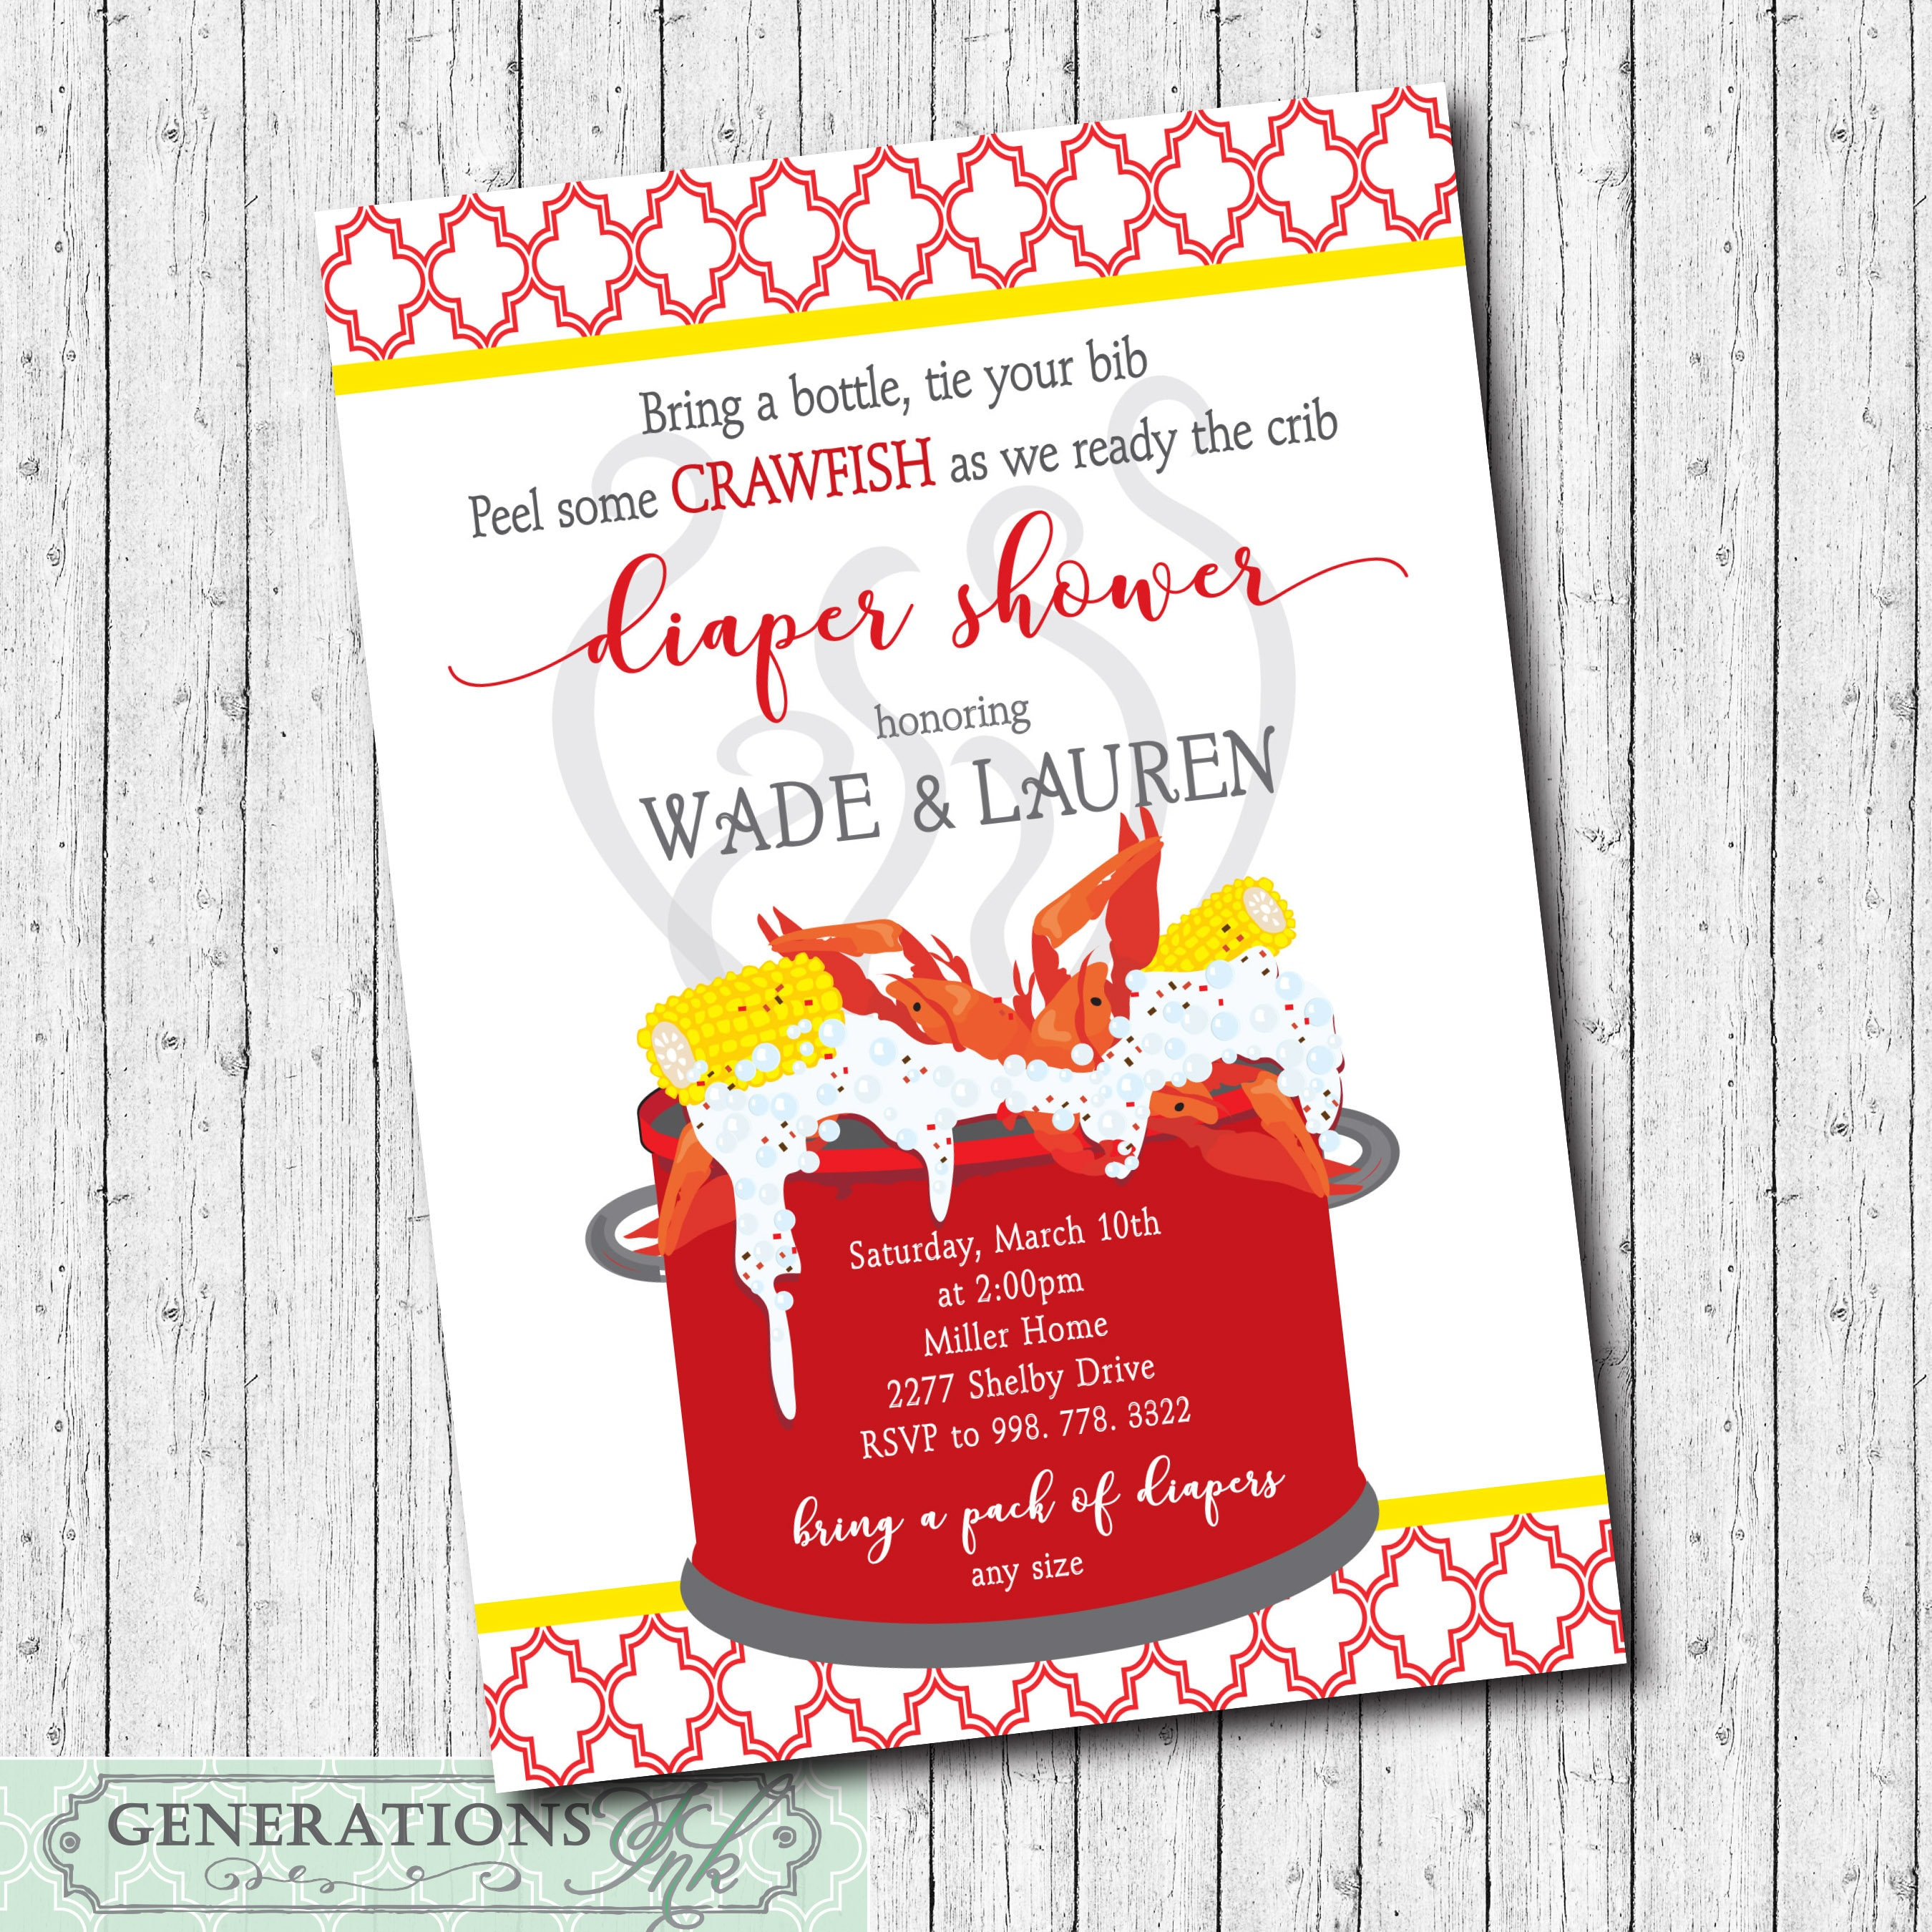 Crawfish Boil Invitation Diaper Shower printable/Digital